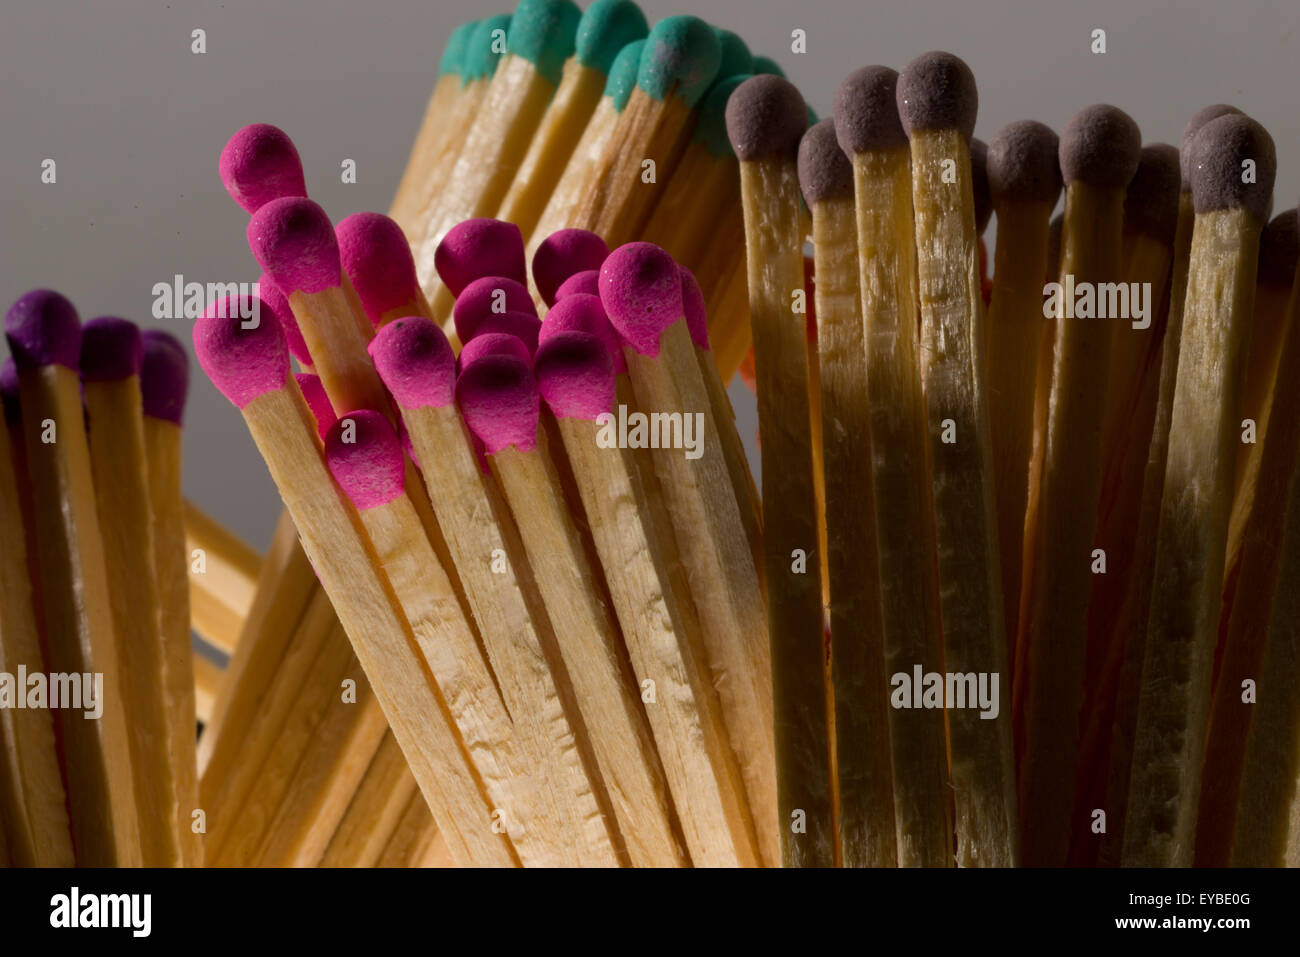 Multicoloured safety match heads. Long matches for lighting a fire. - Stock Image